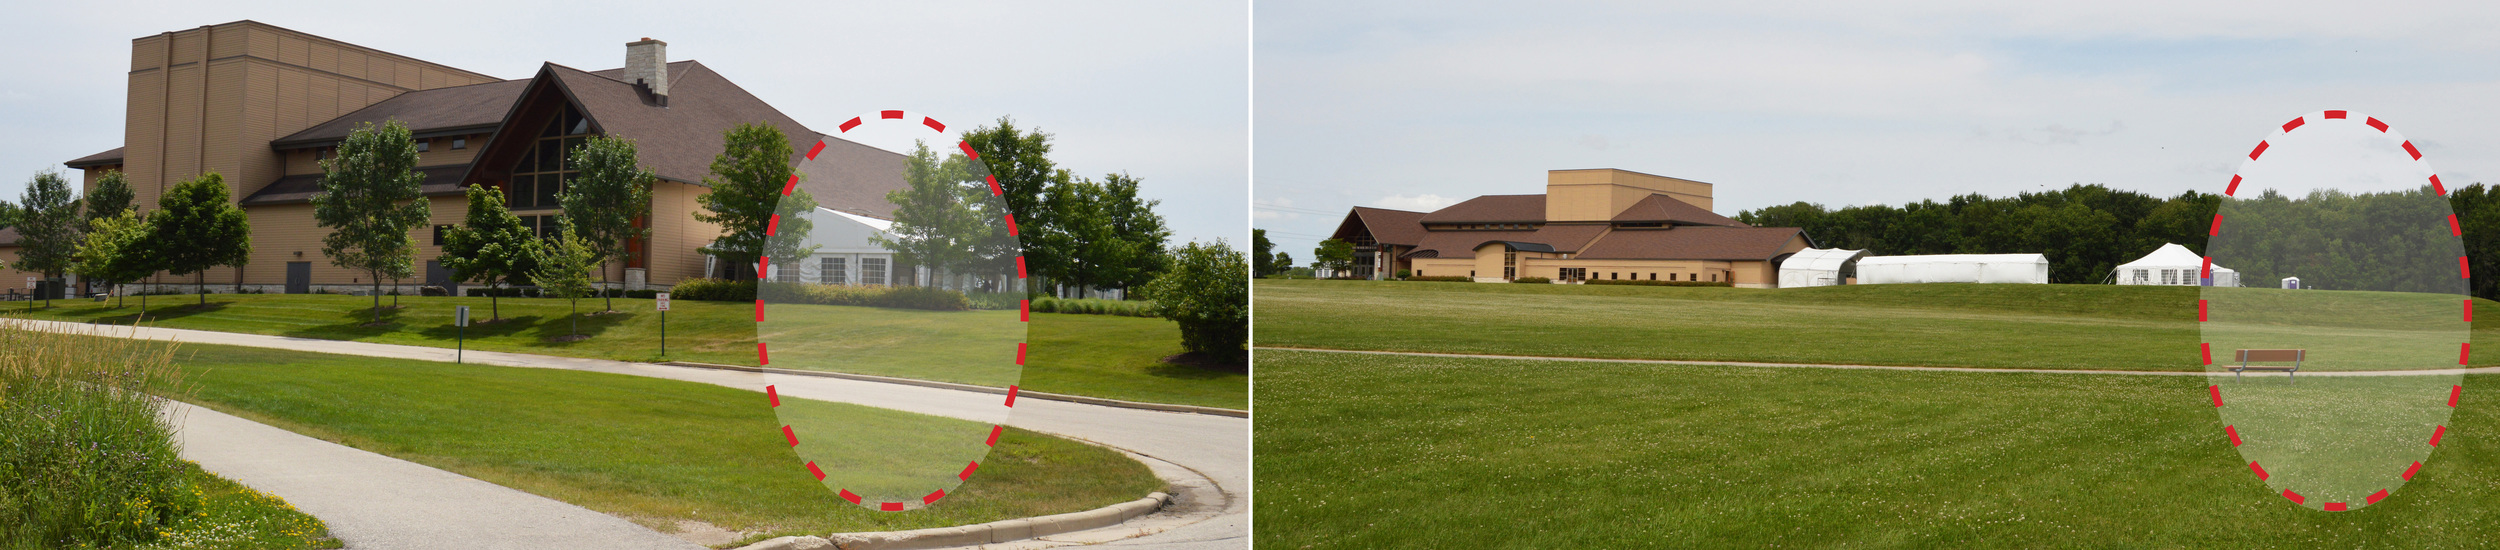 """""""NORTH WOODS"""" Location (LEFT) AND """"SE FIELD"""" LOCATION (RIGHT)"""